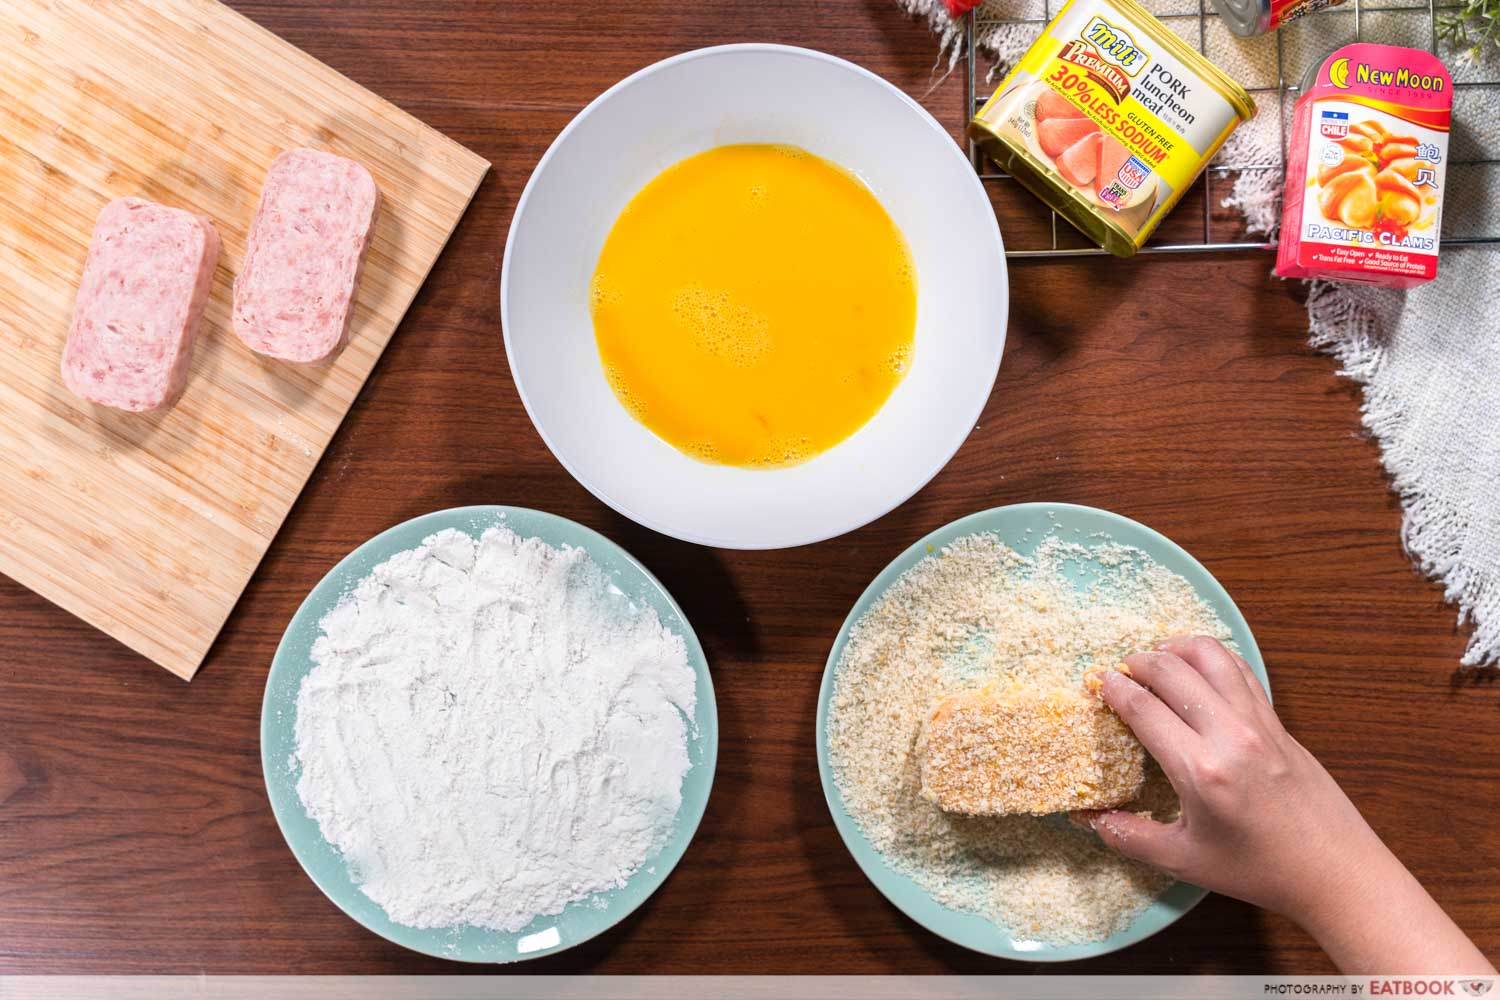 Canned food recipes - panko breading